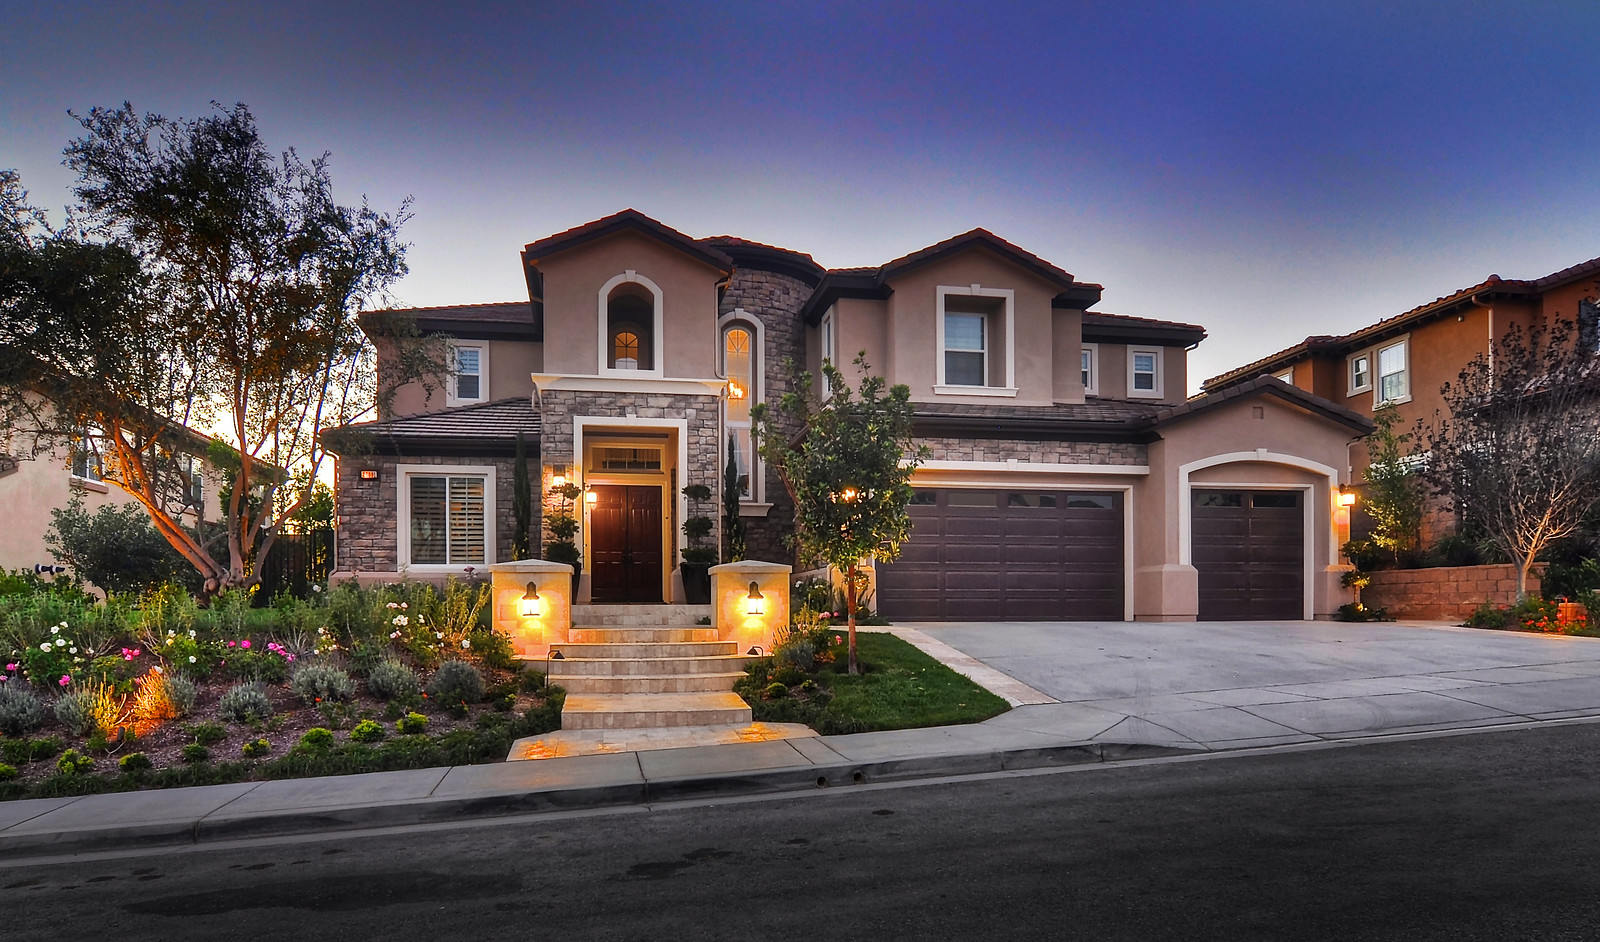 20091 Umbria Way, Yorba Linda